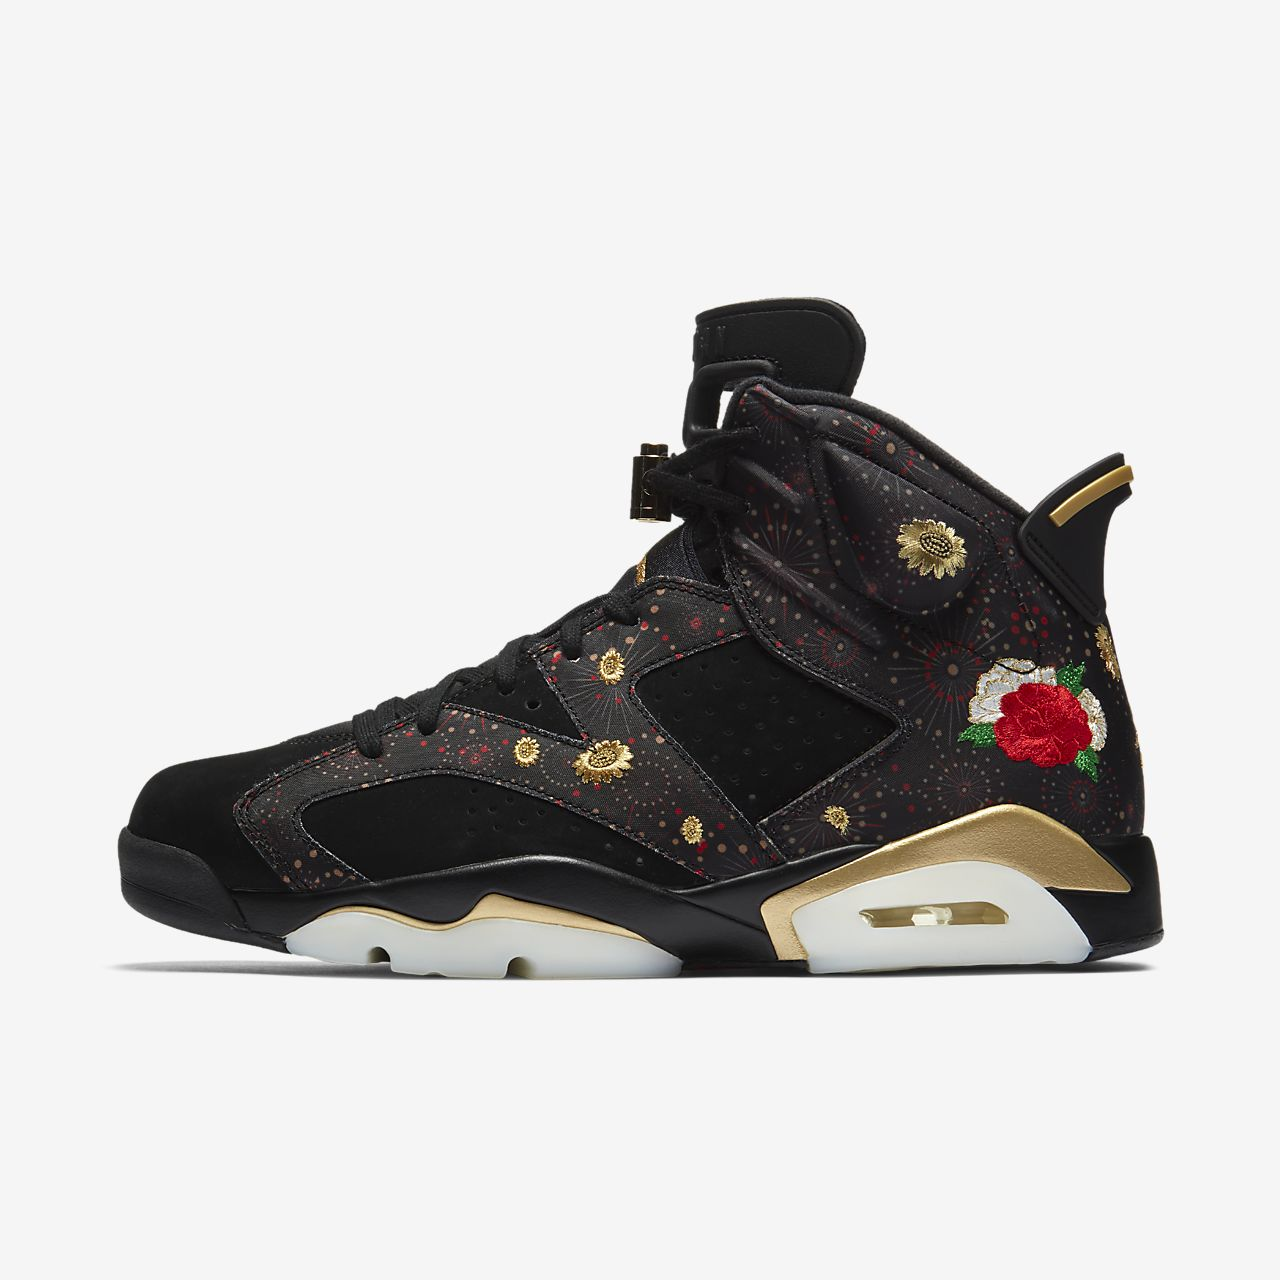 Air Jordan 6 Retro CNY Men's Shoe